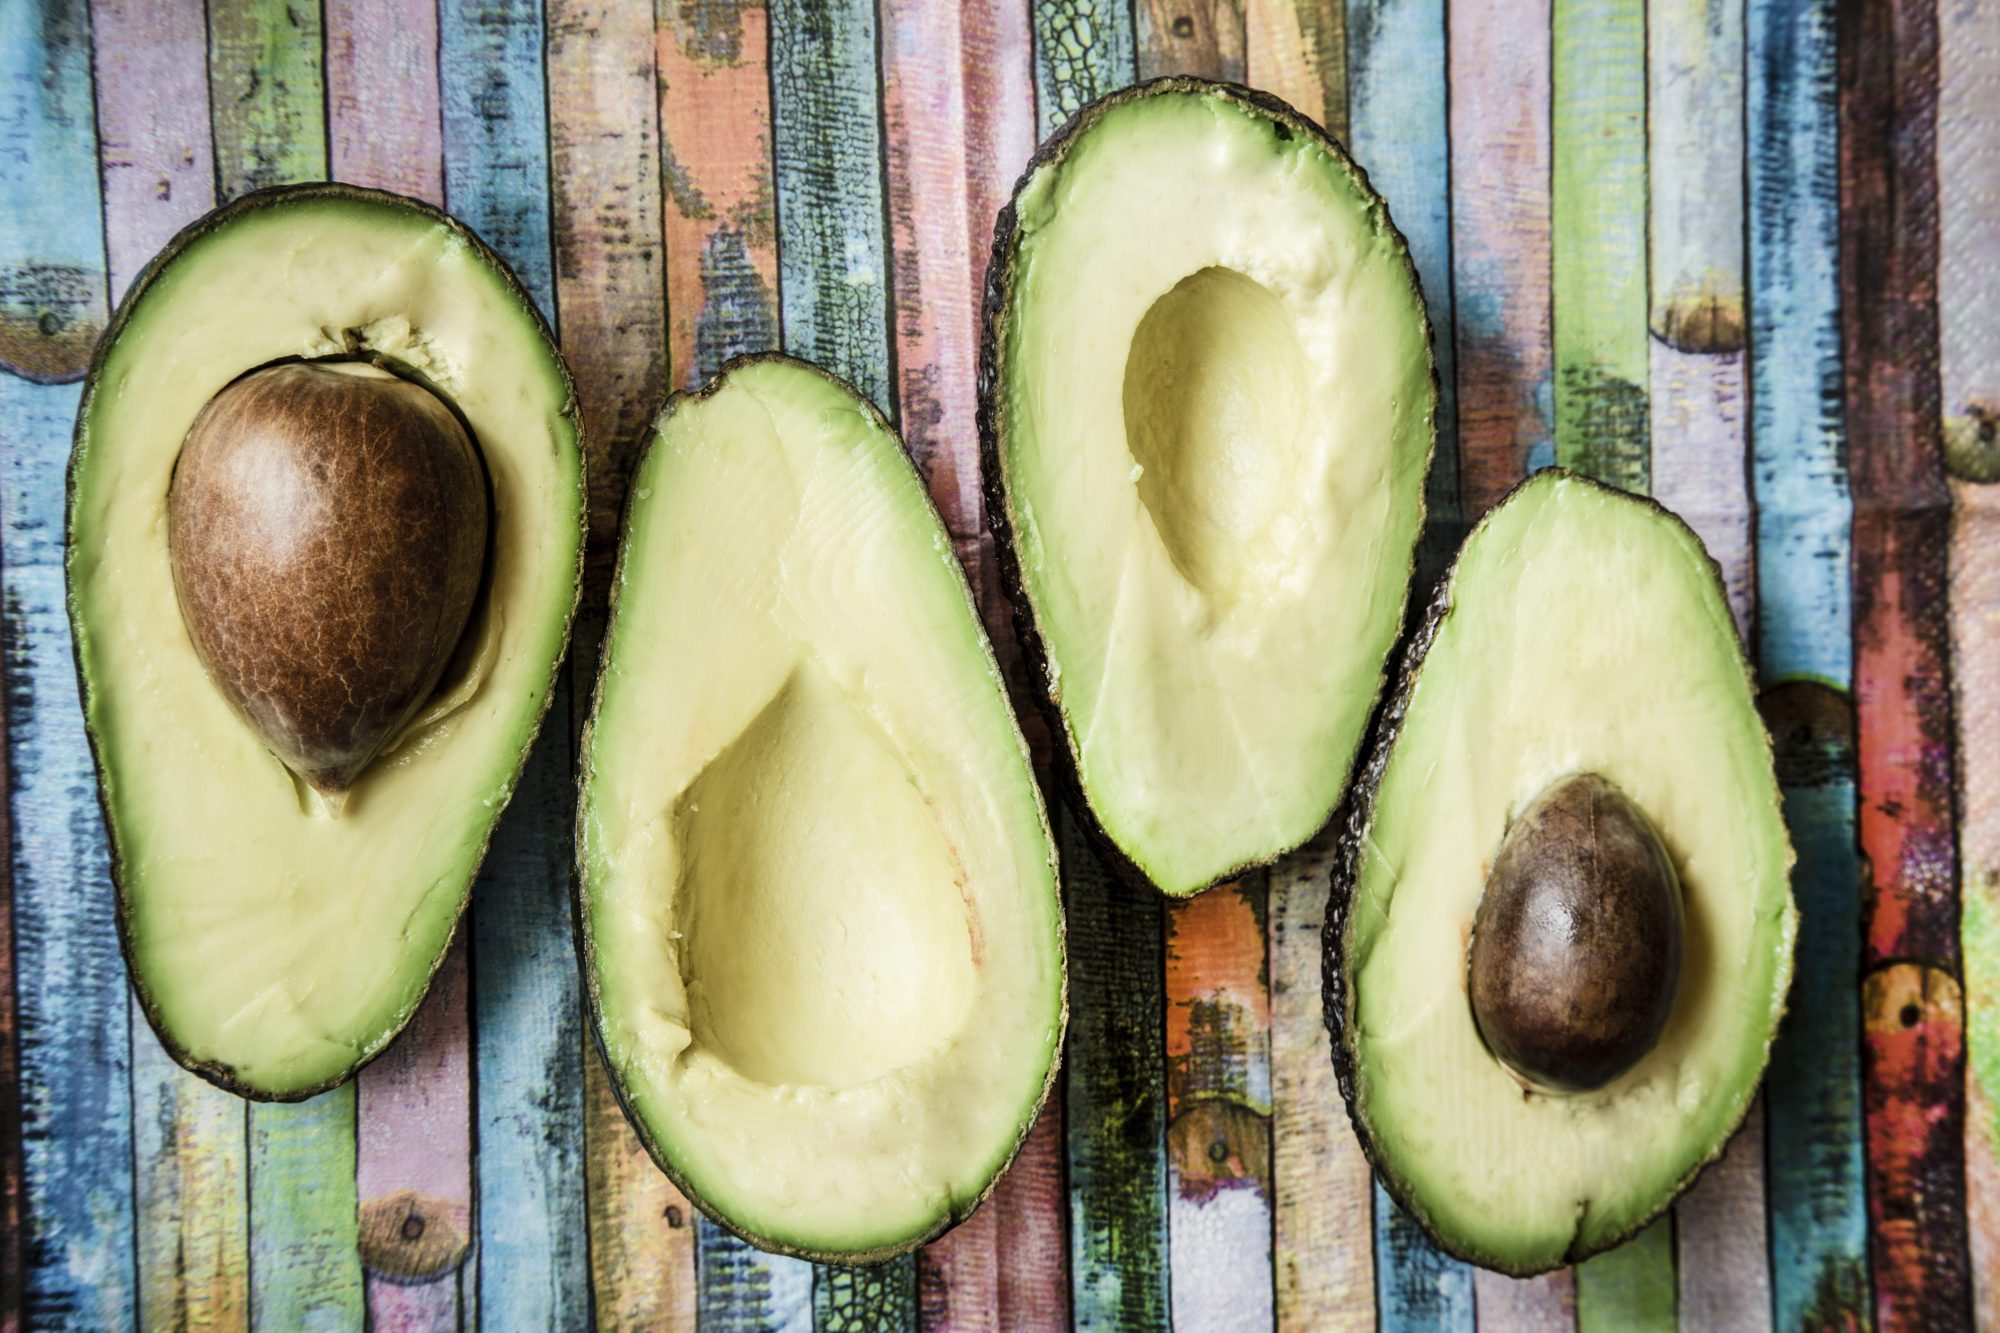 10 Reasons to Love Avocados Even More Than You Already Do